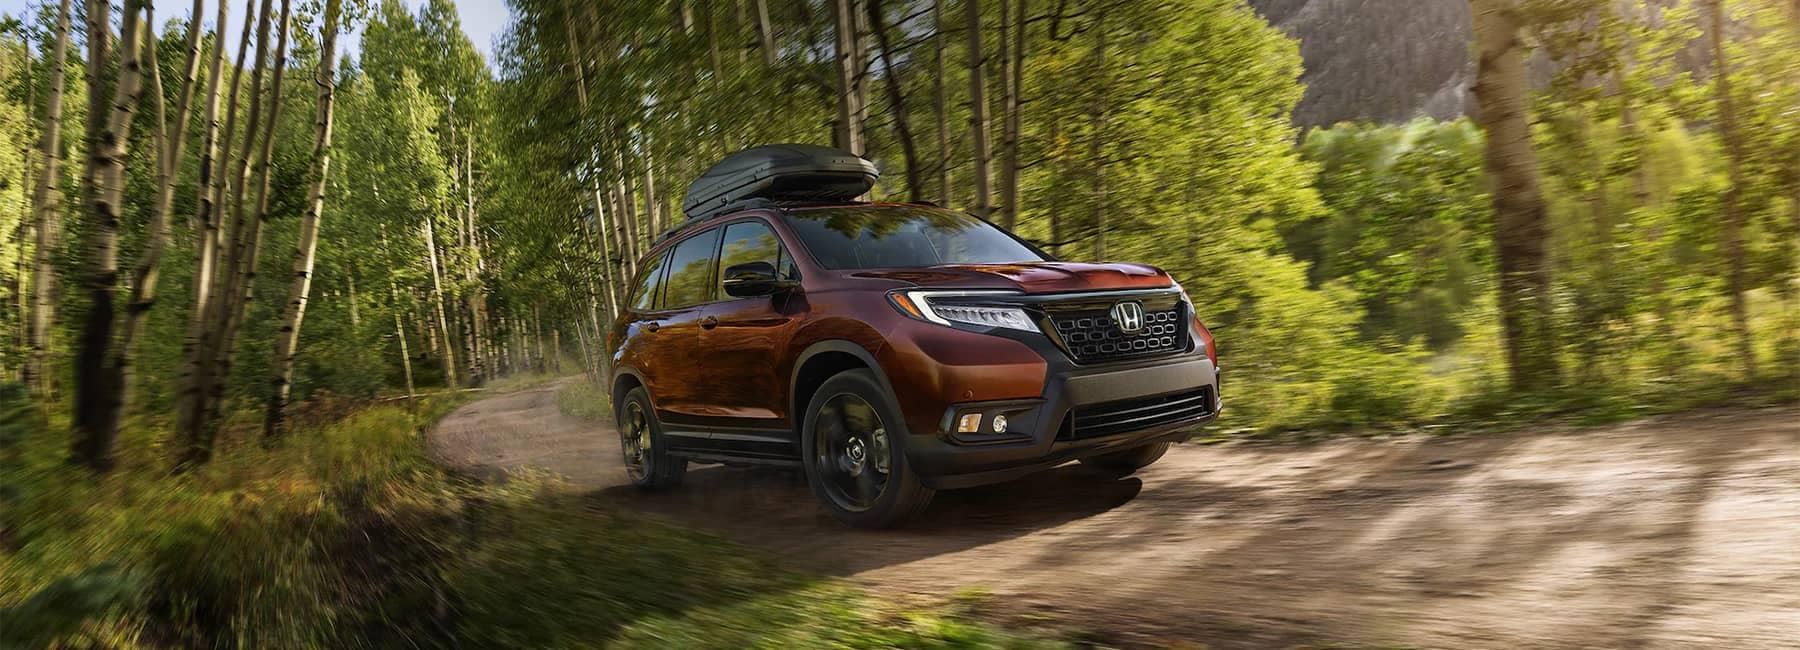 2020 Red Honda Passport Driving in Forest